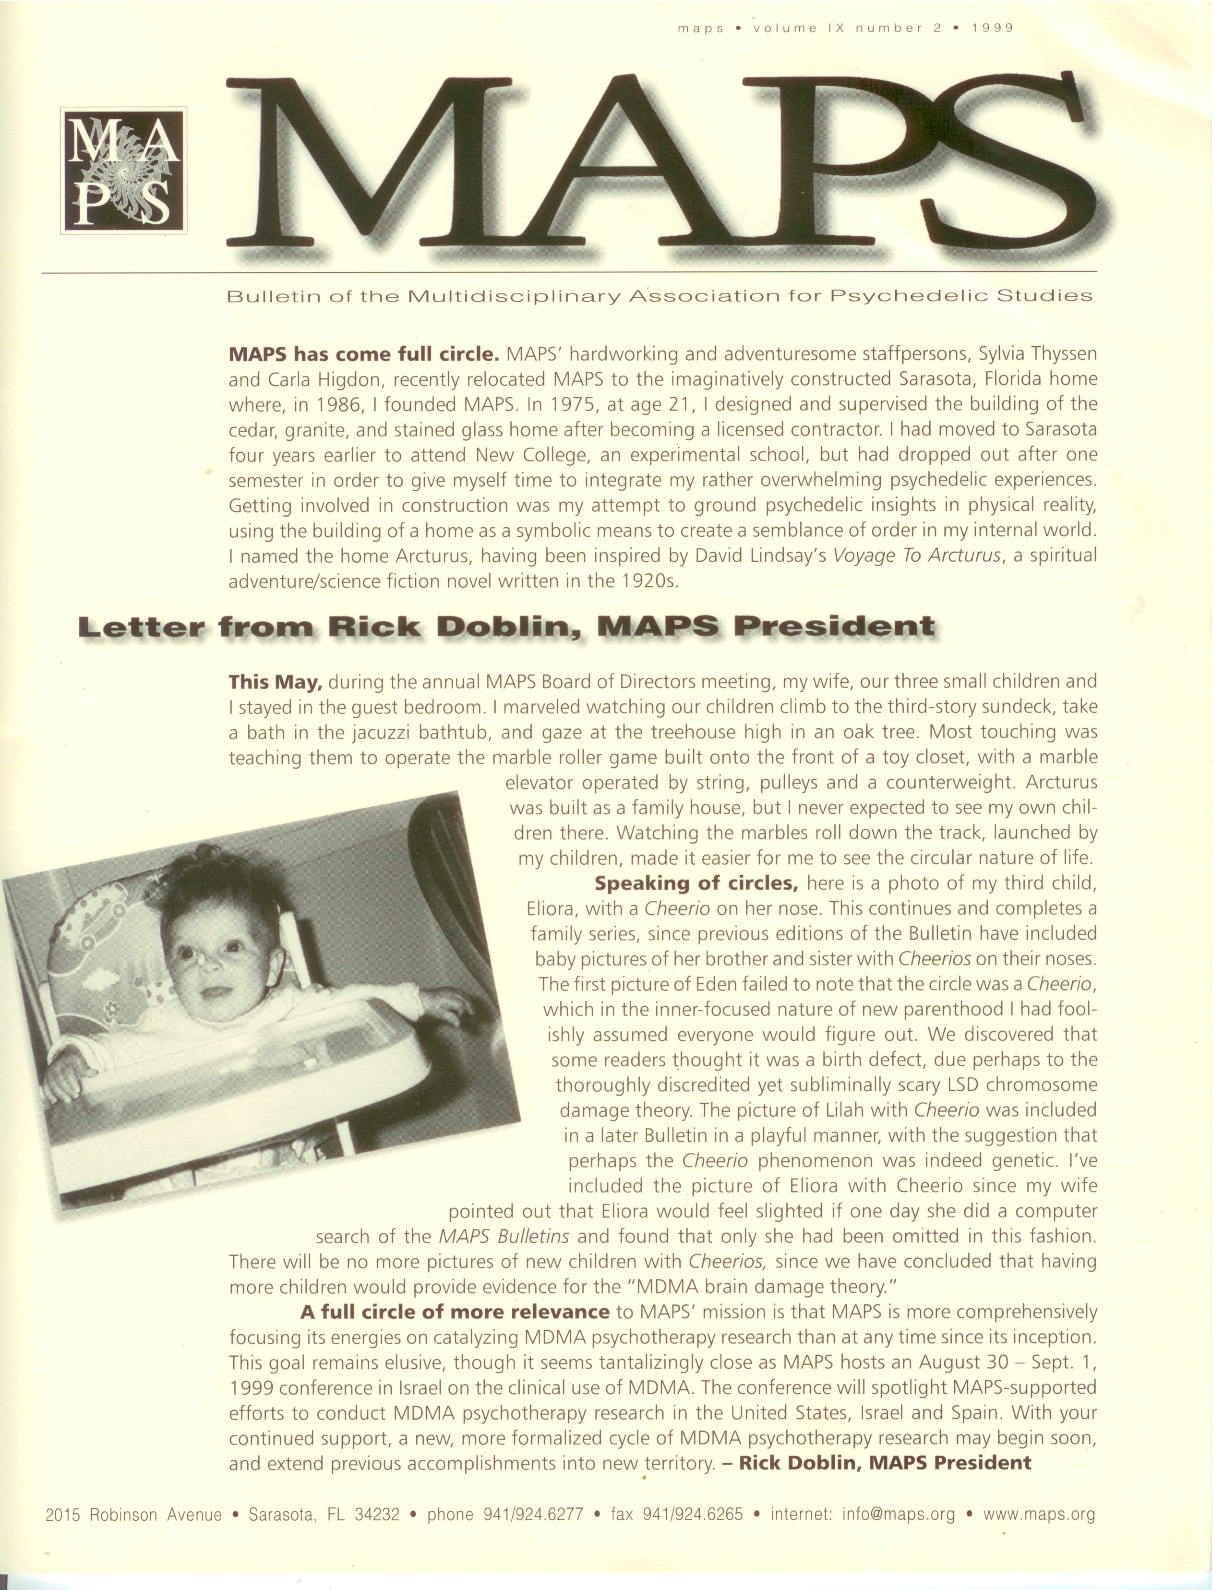 Summer 1999 Vol. 09, No. 2 MAPS has come full circle…